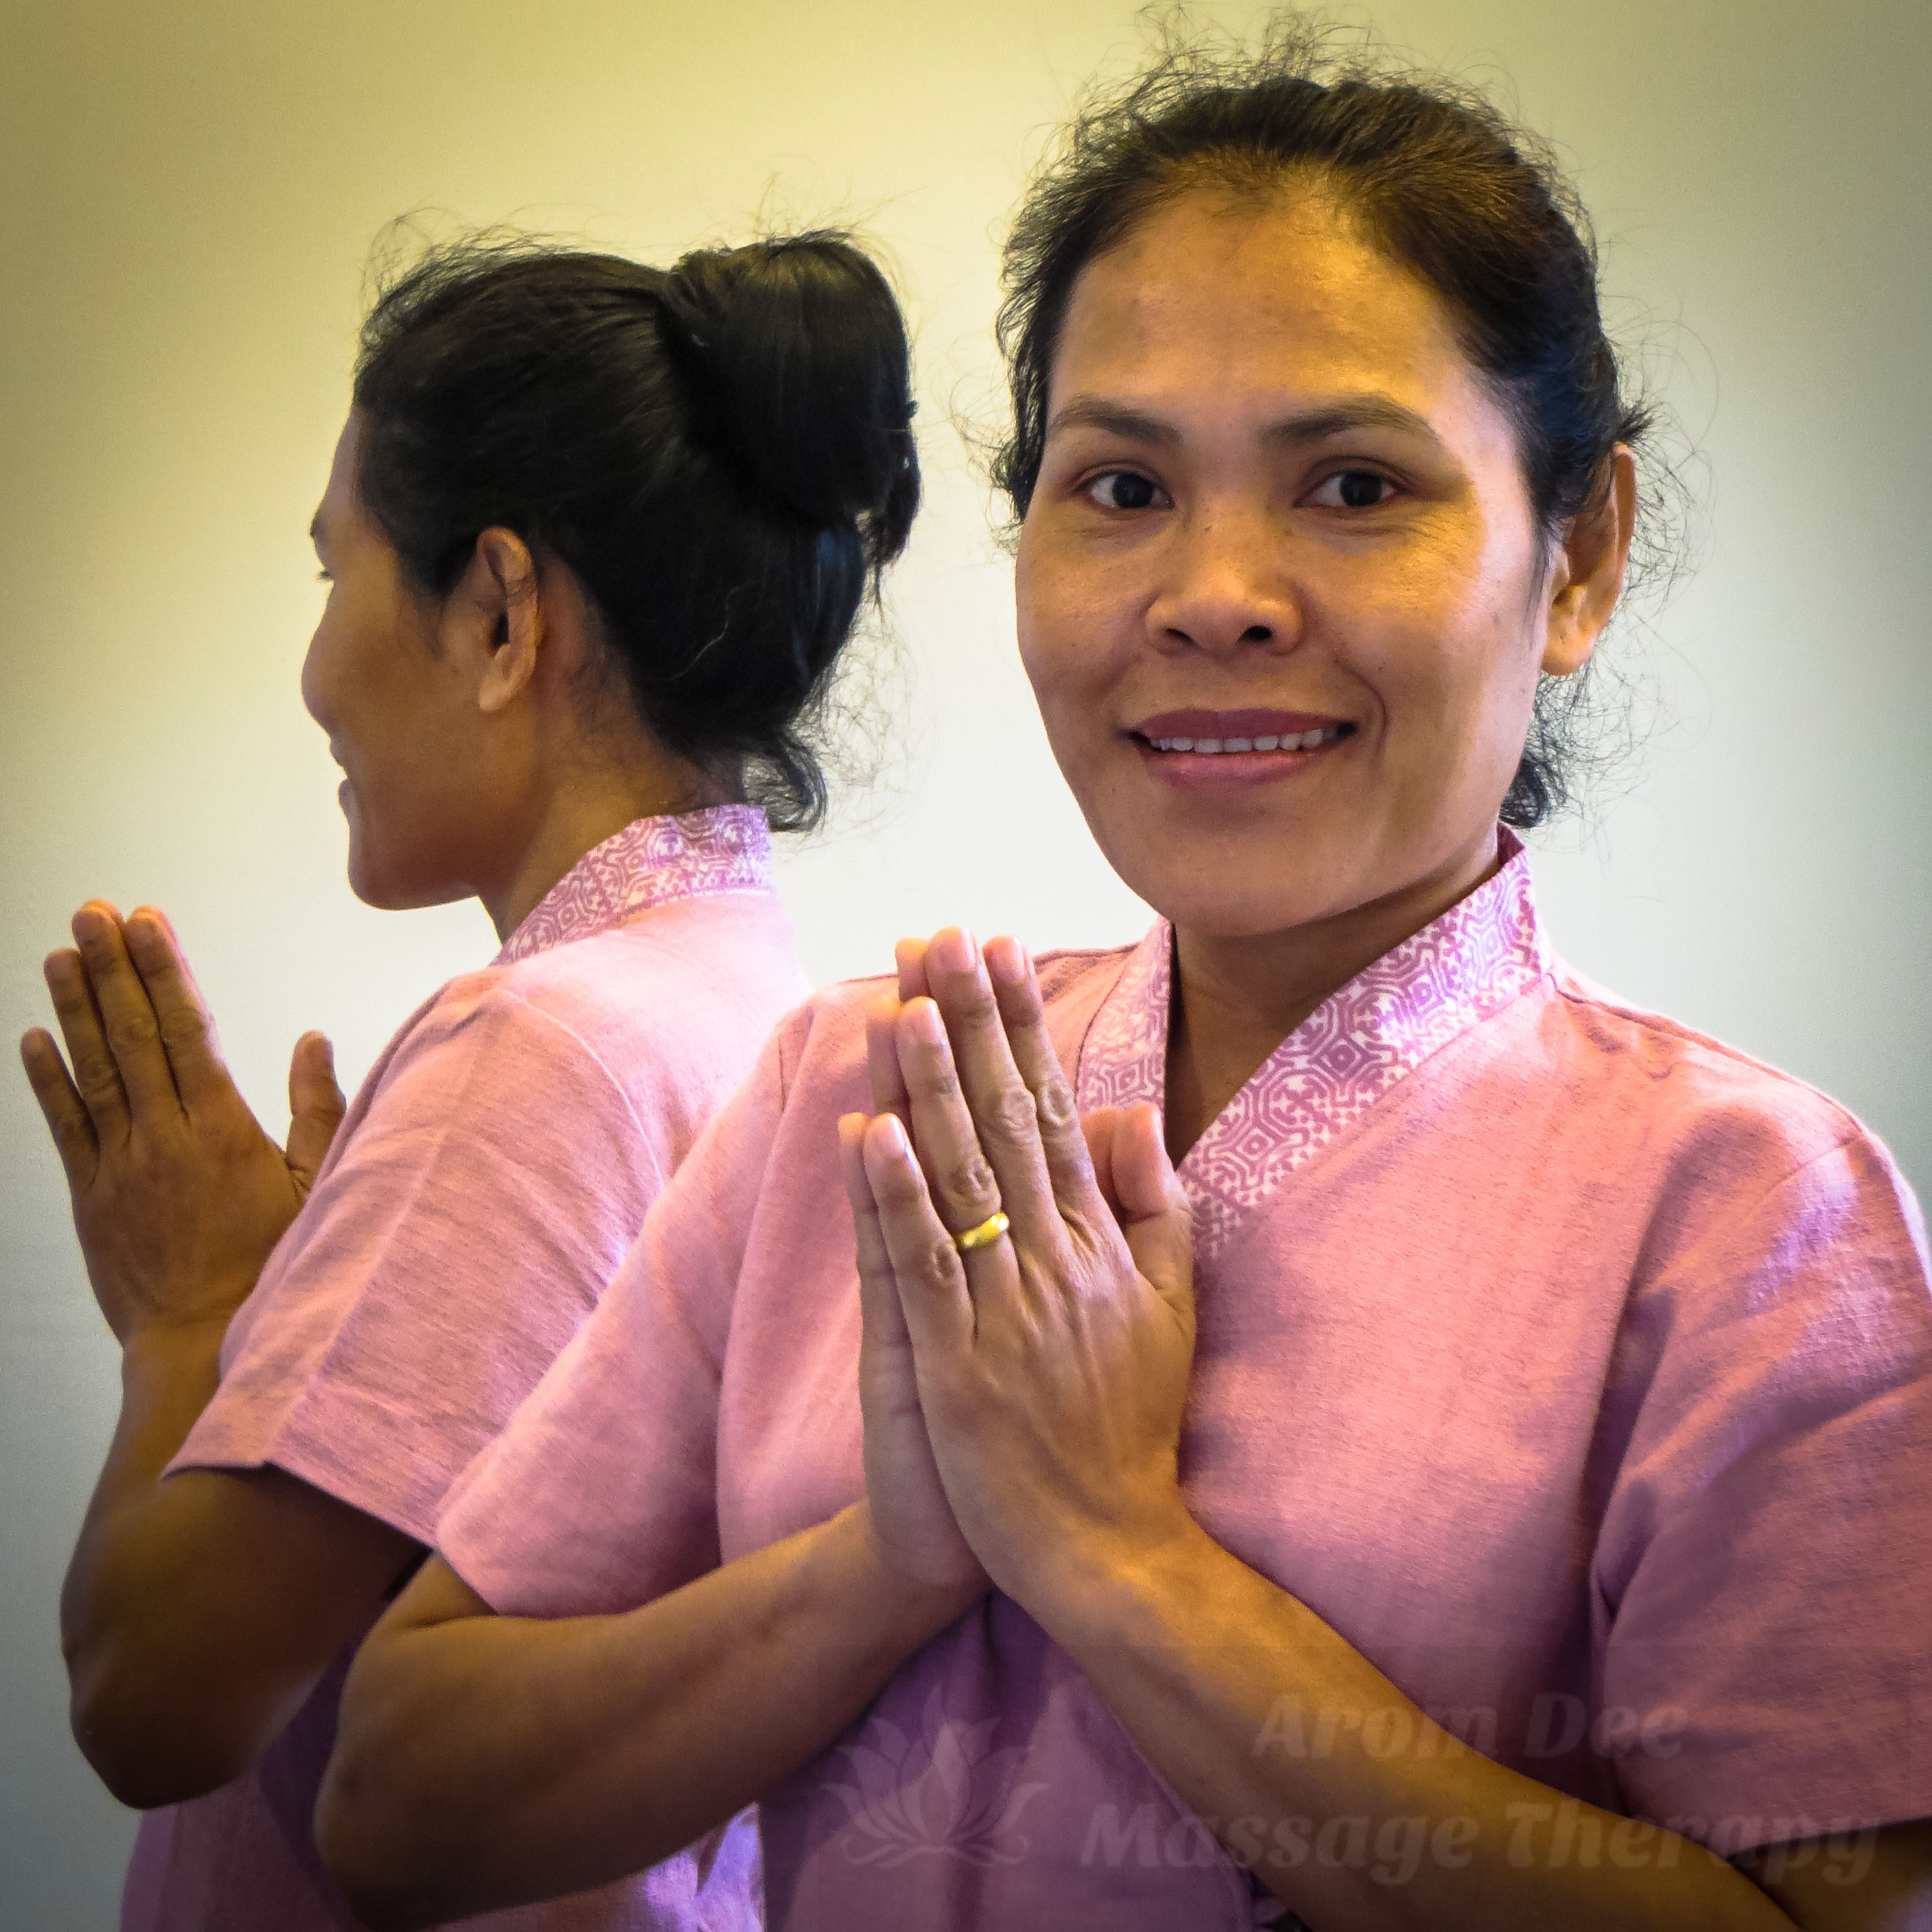 Female Thai Massage therapist wearing pink tunic making Wai with hands together